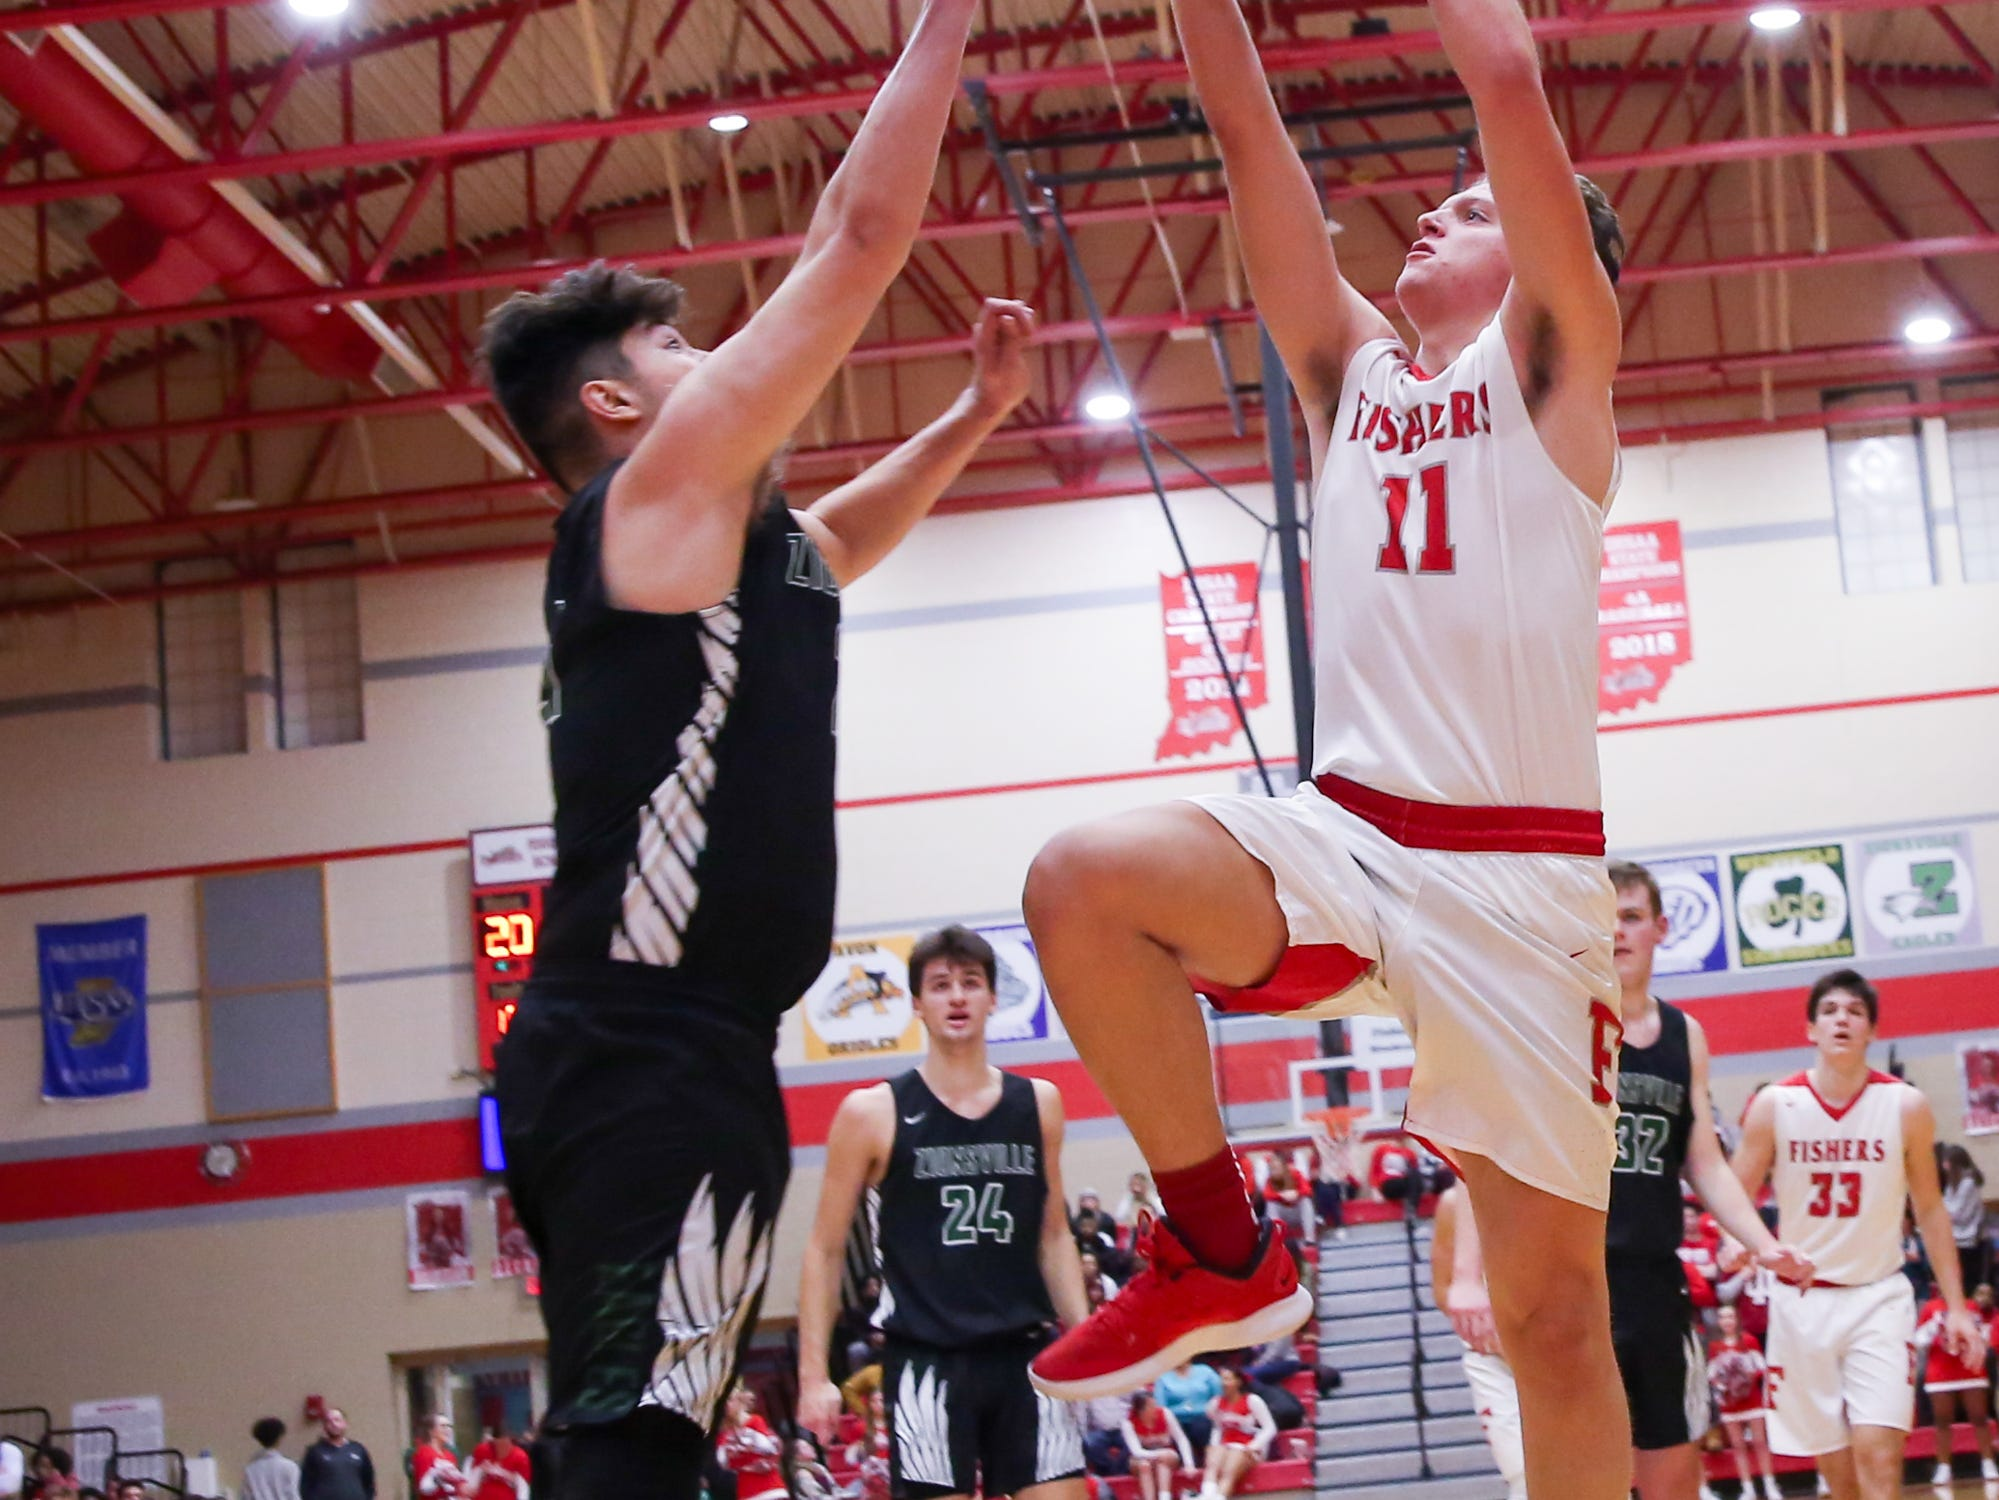 Fisher's Justin Long (11) drives to the basket during the first half of Zionsville vs. Fishers high school boys varsity basketball game held at Fishers High School, February 15, 2019.